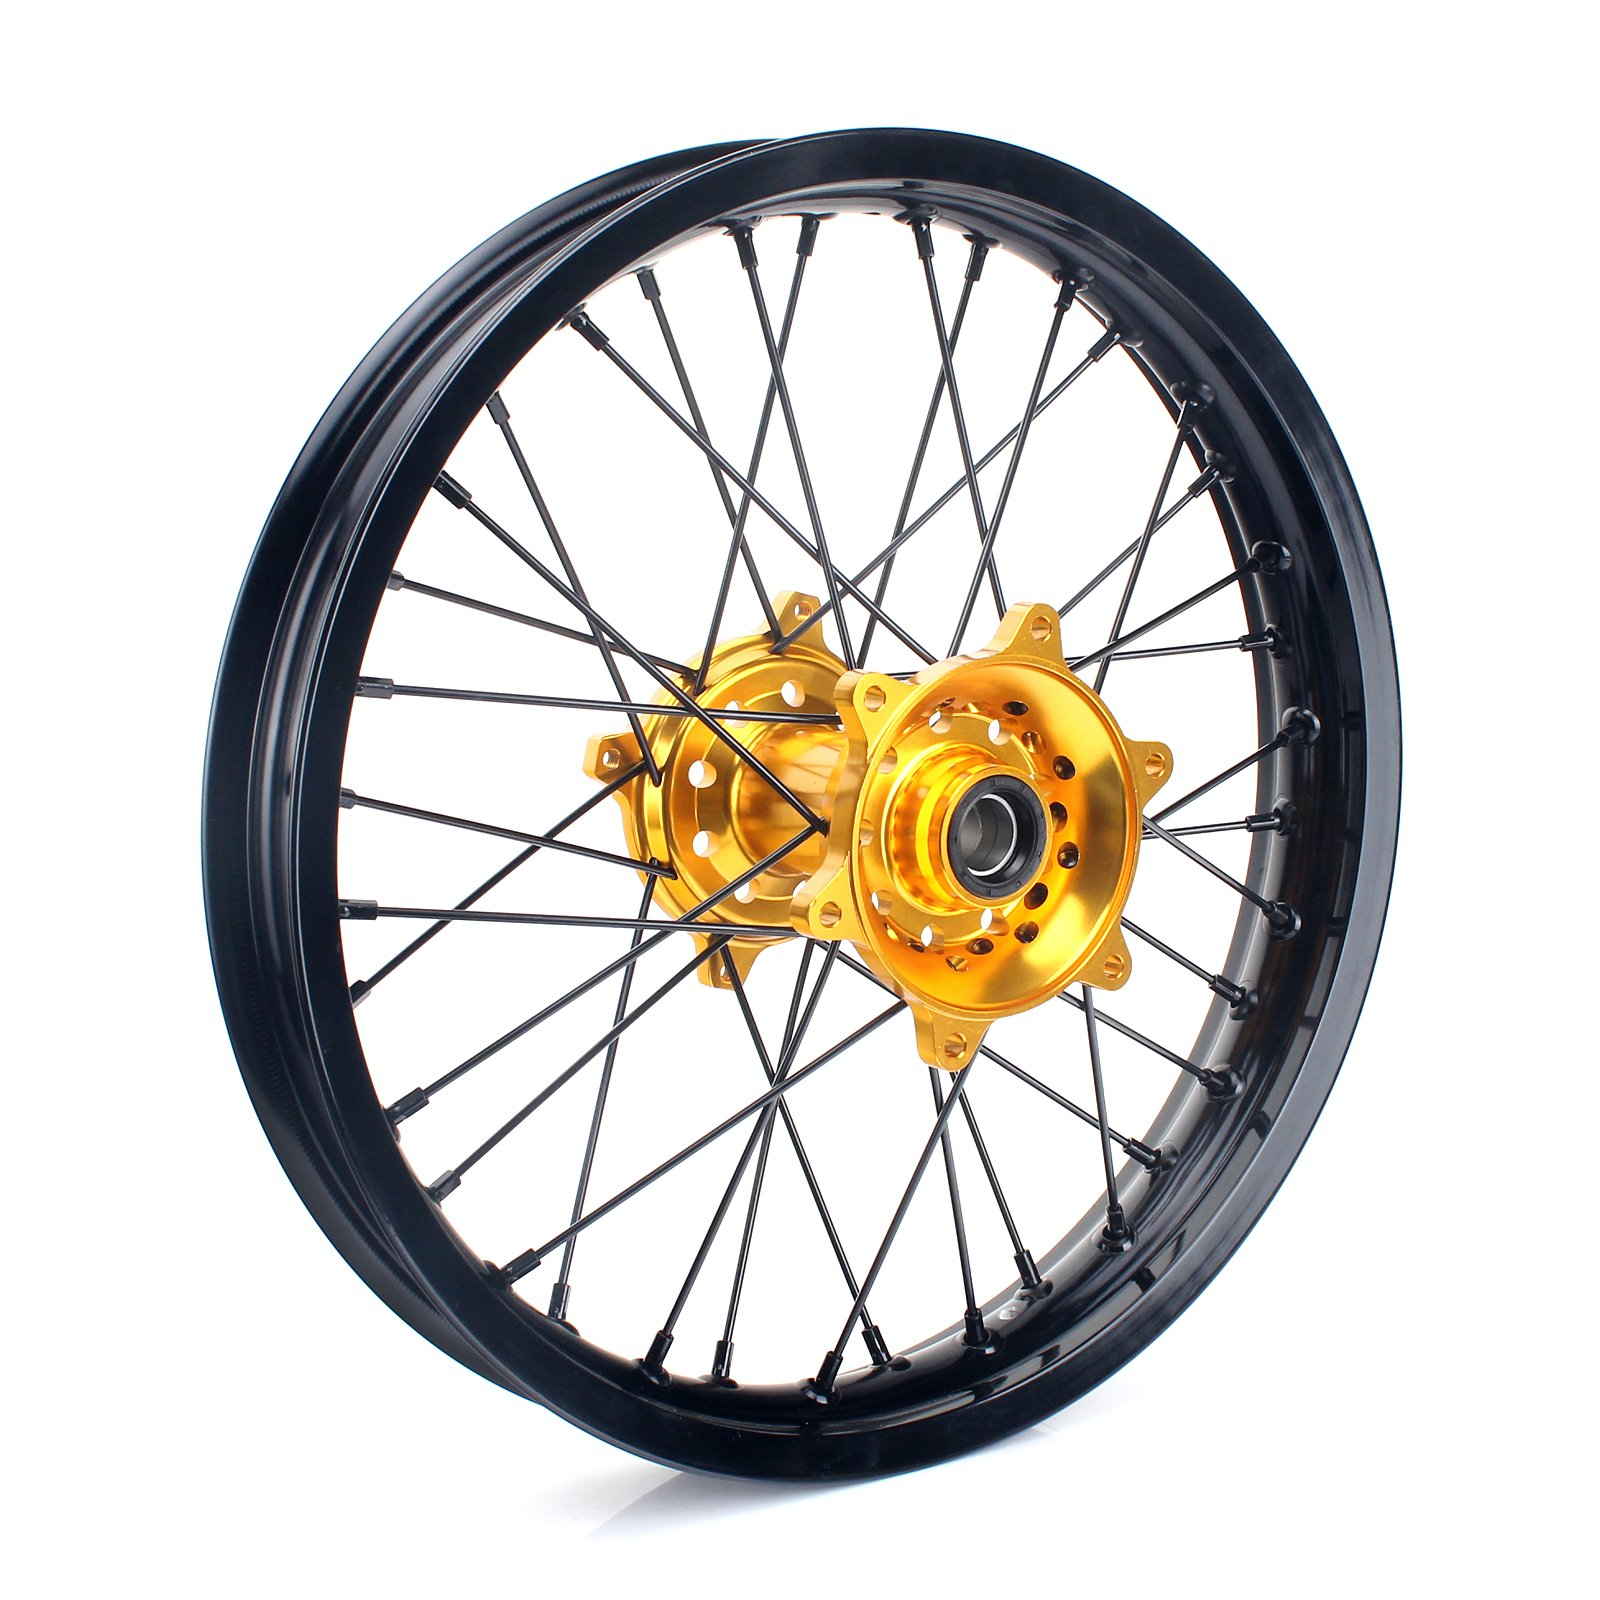 TARAZON 18 x 2.15 MX Rear Complete Wheel Kit Rim Spokes Gold Hub for Suzuki RMZ250 2007-2016 RMZ450 2005-2016